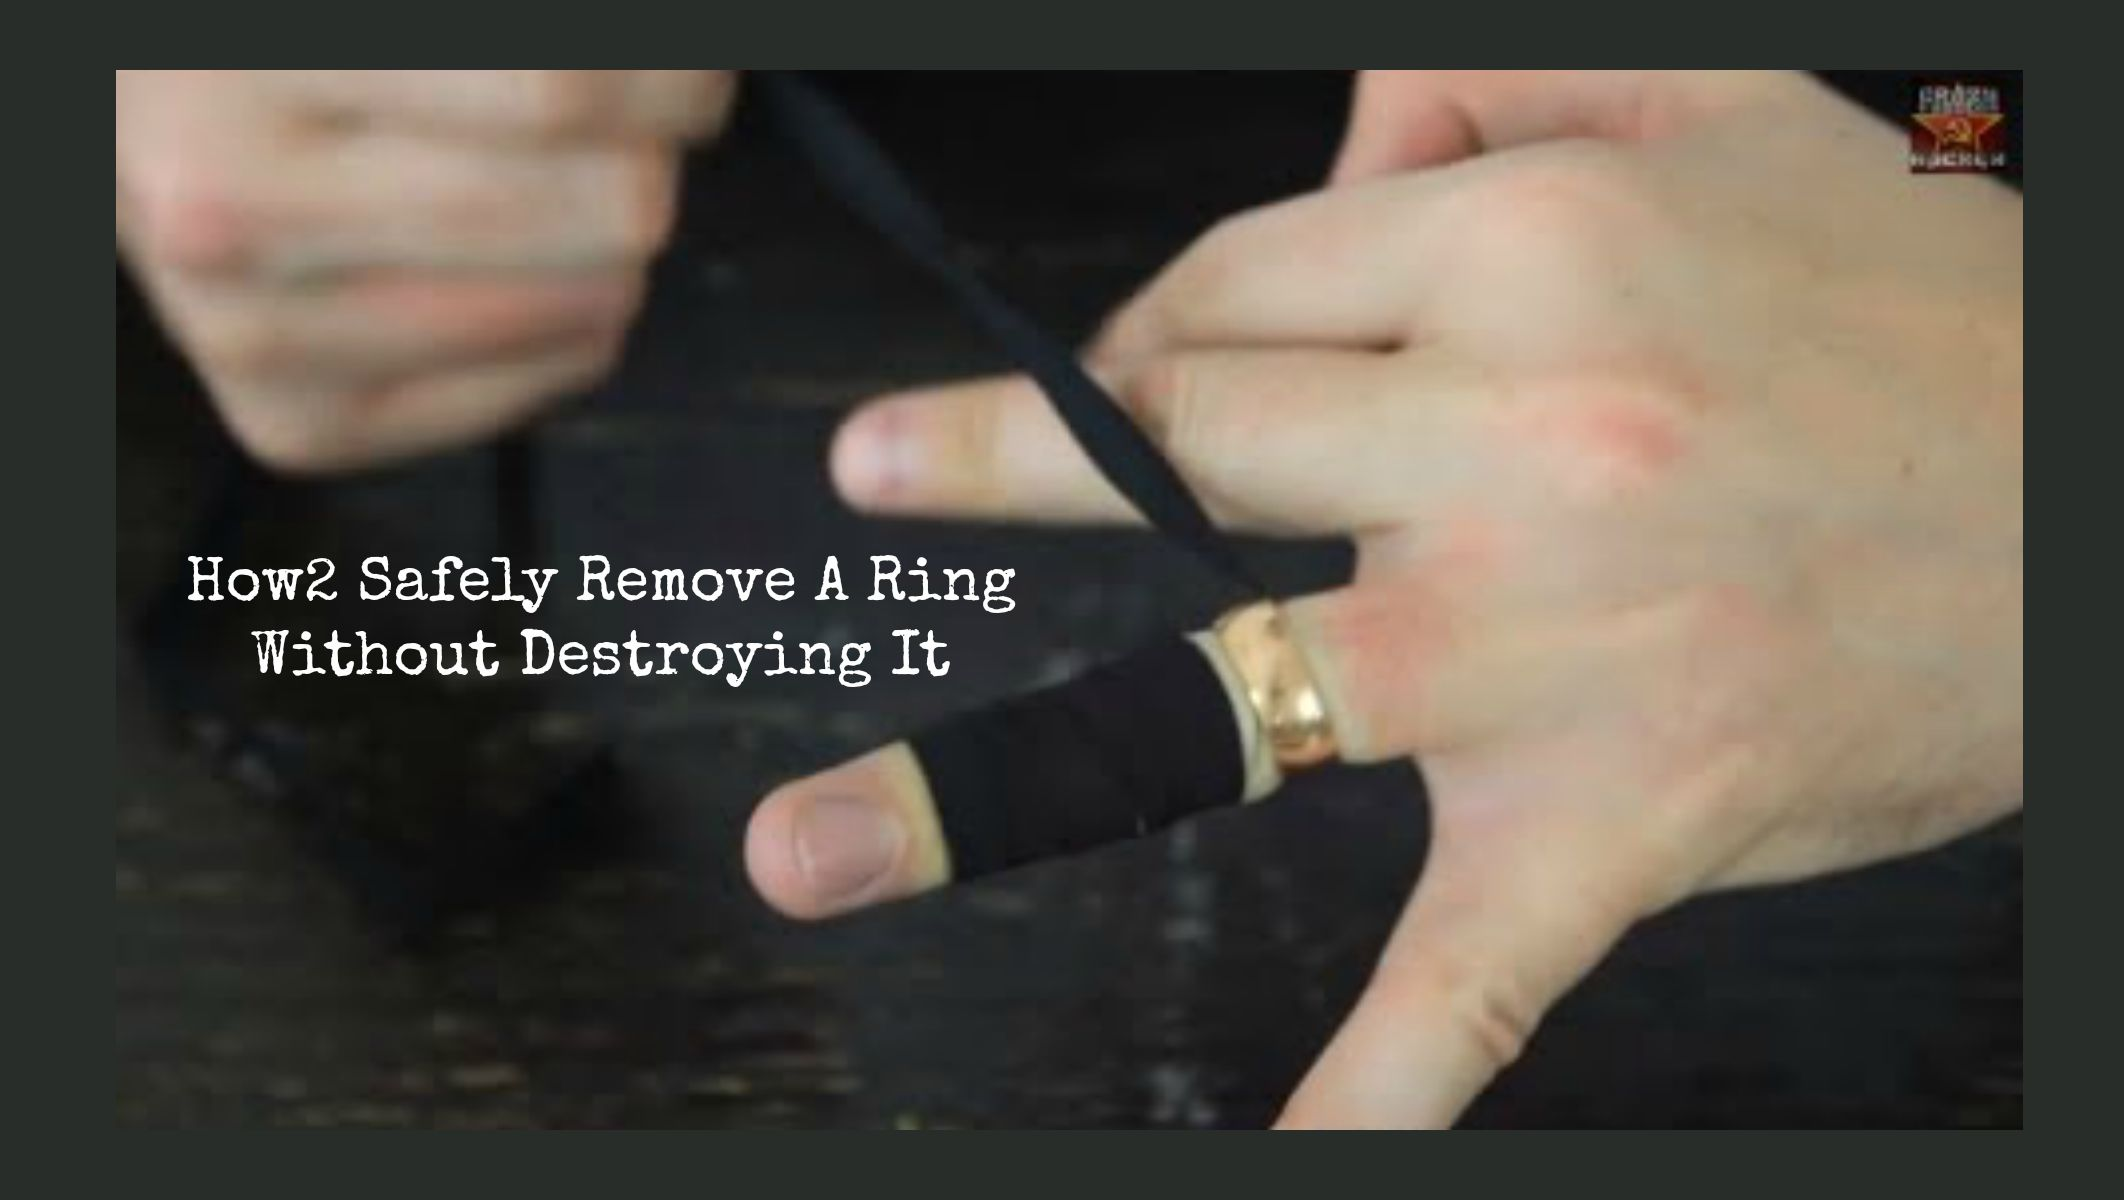 How2 Safely Remove A Ring Without Cutting It Off